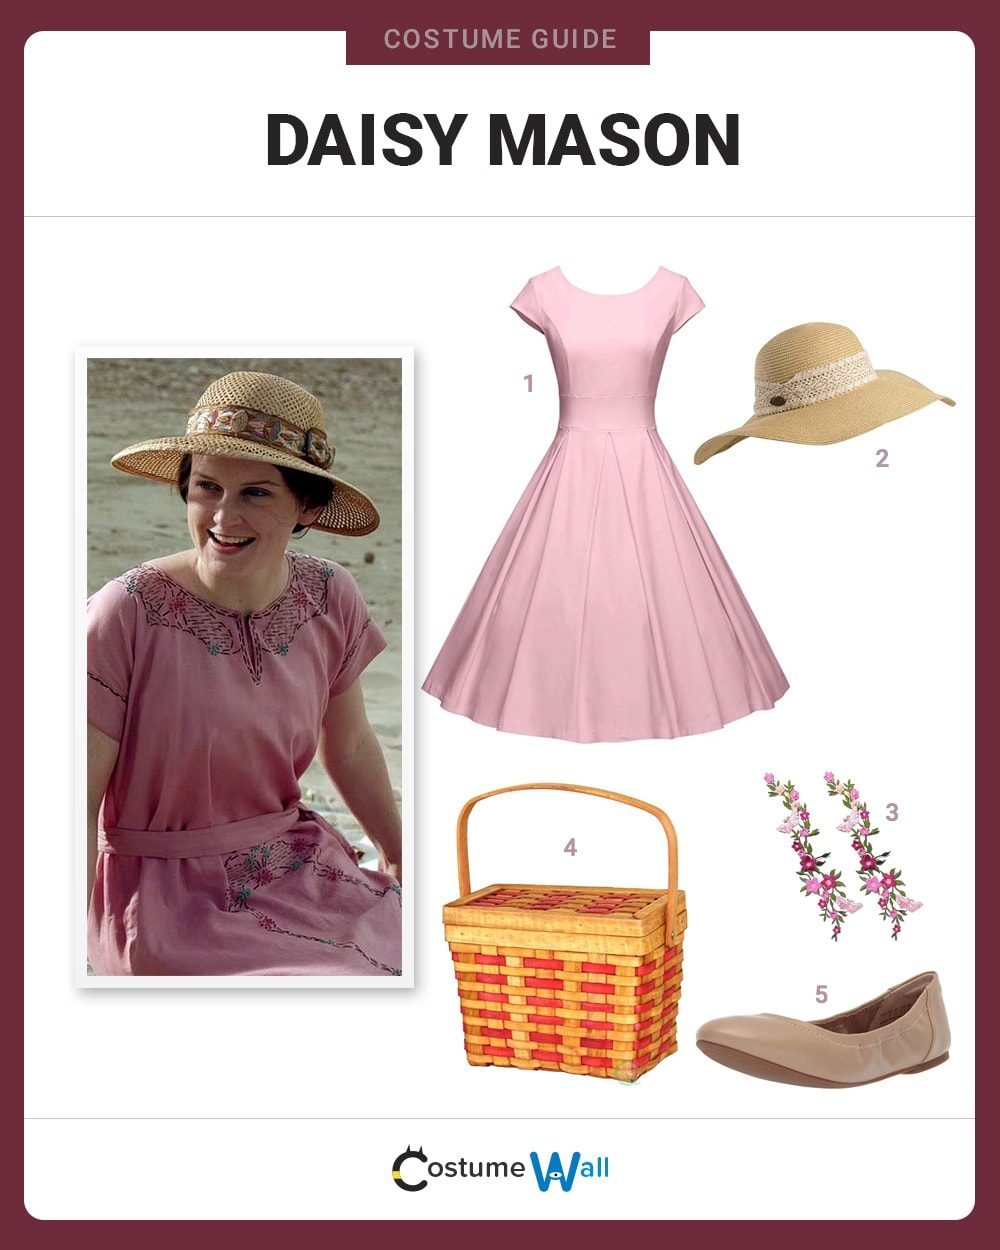 Daisy Mason Costume Guide